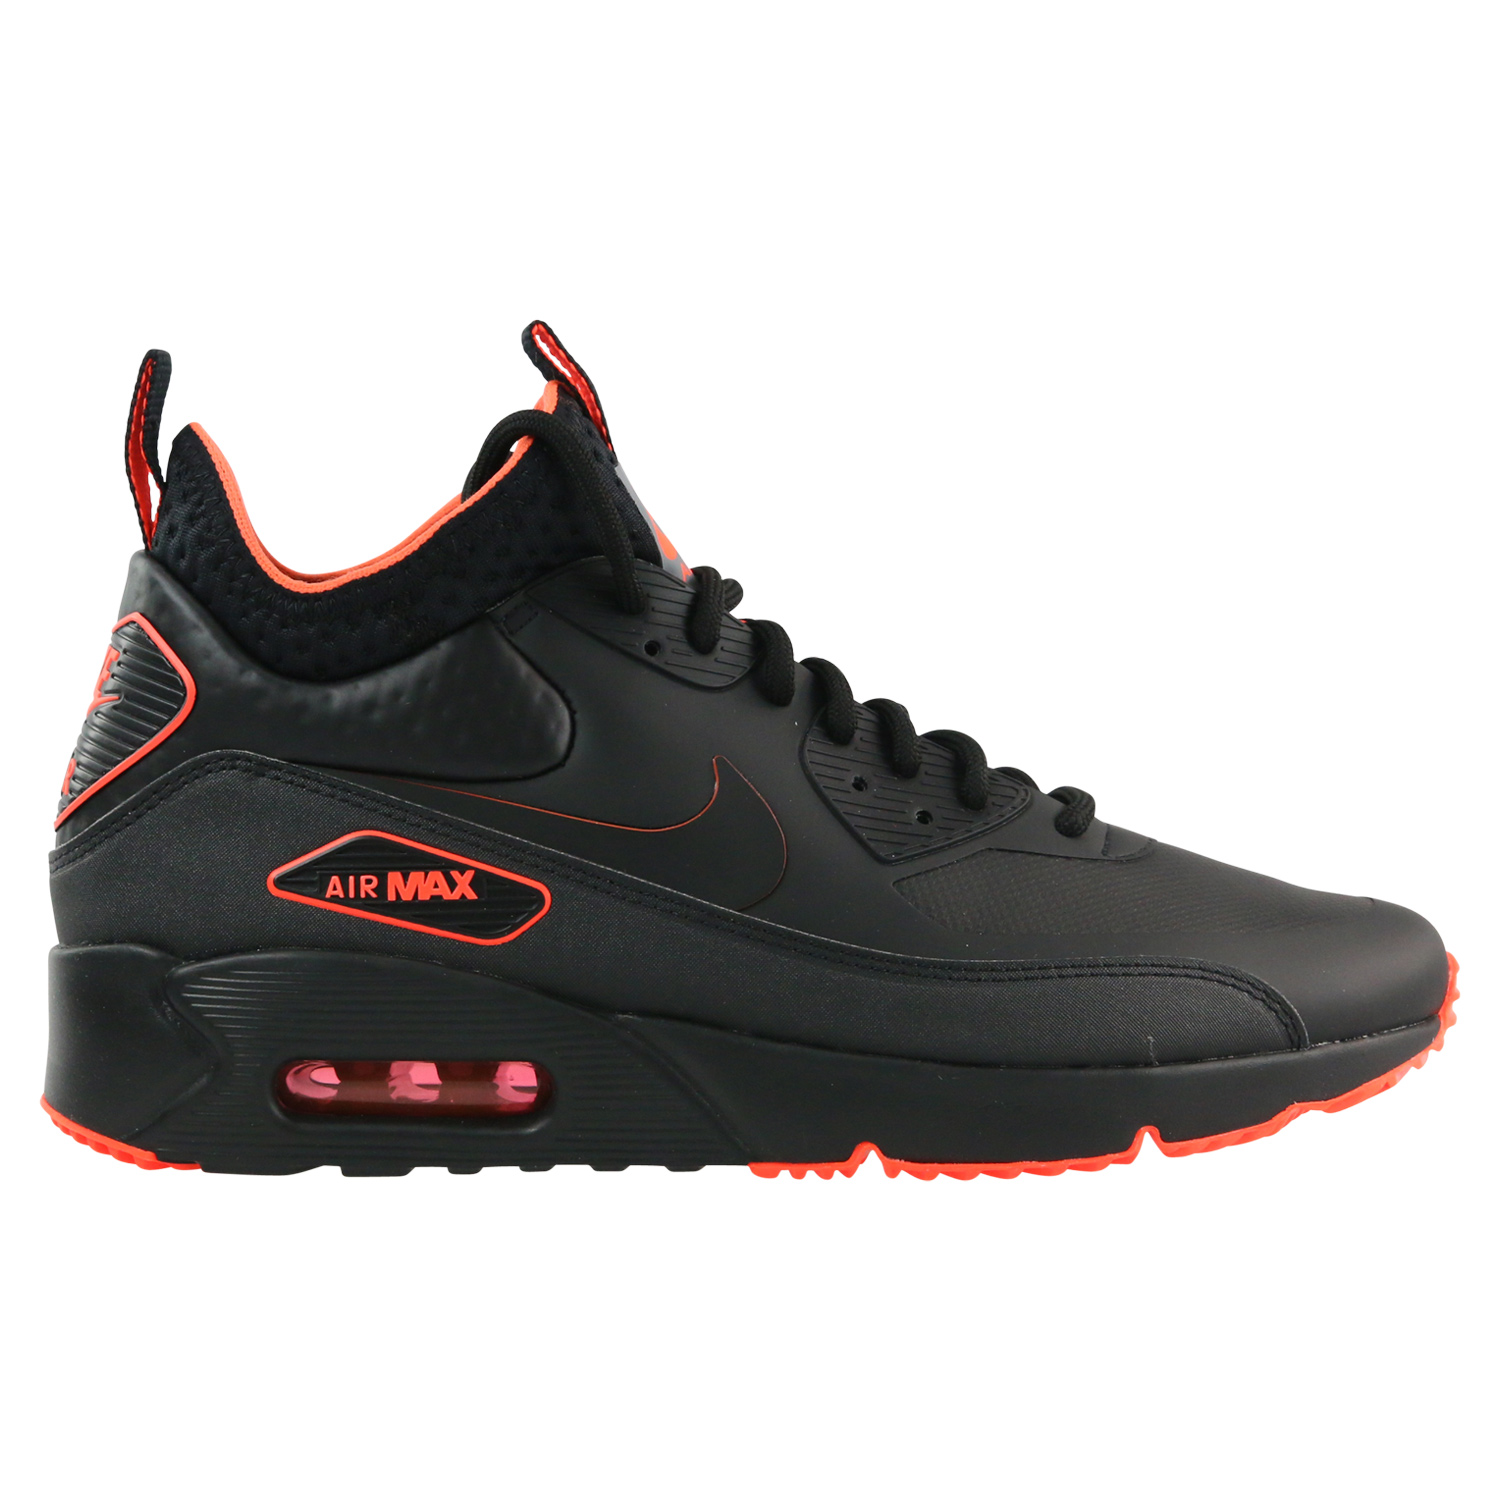 nike air max 90 ultra mid winter se sneaker winterschuhe herren aa4423 924458 ebay. Black Bedroom Furniture Sets. Home Design Ideas